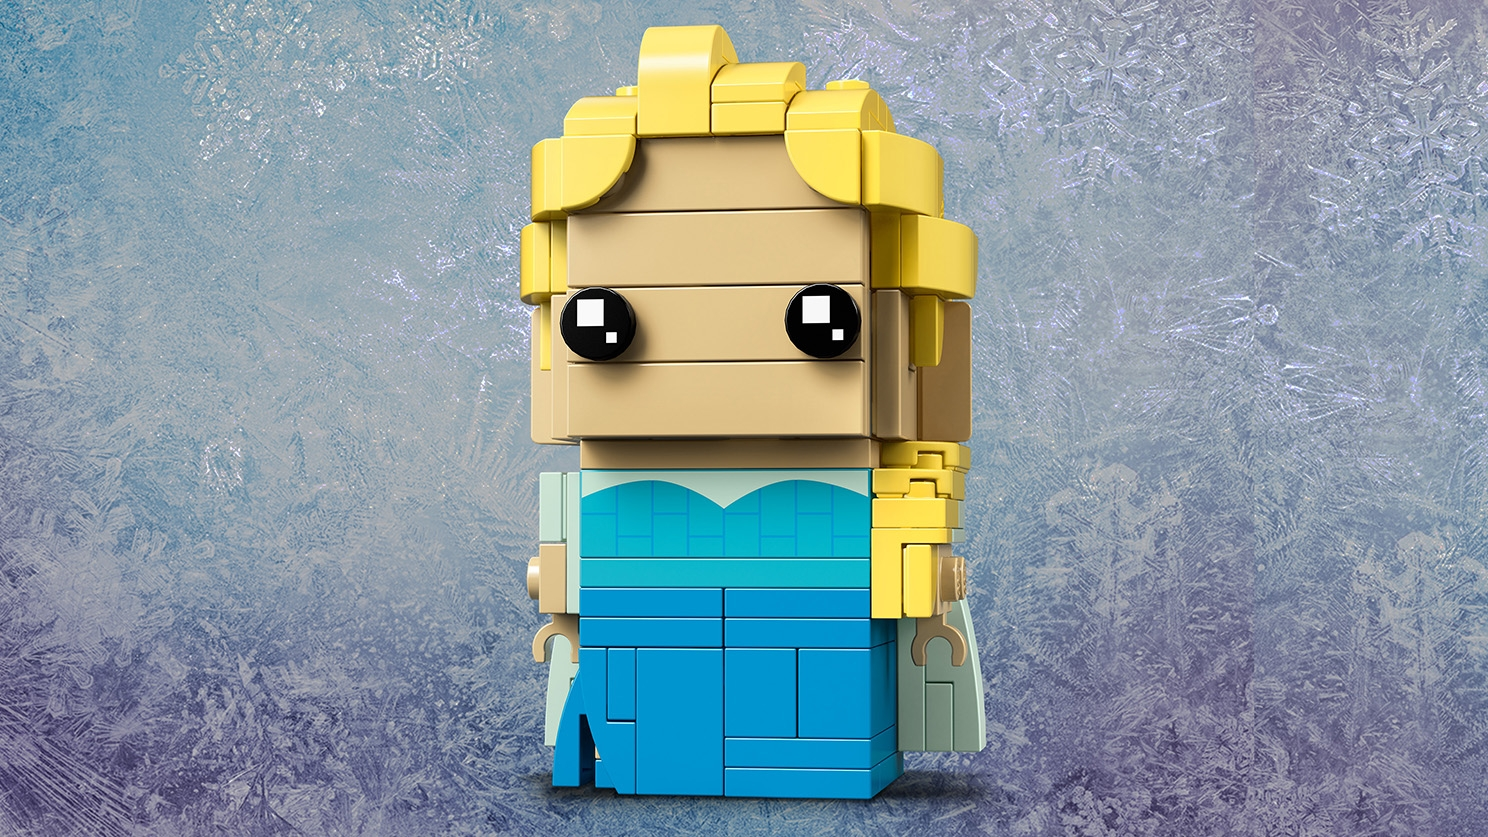 LEGO Brickheadz - 41617 Elsa - Build a LEGO Brickheadz version of Elsa from Disney movie Frozen with her iconic blonde braid and display her on a baseplate.